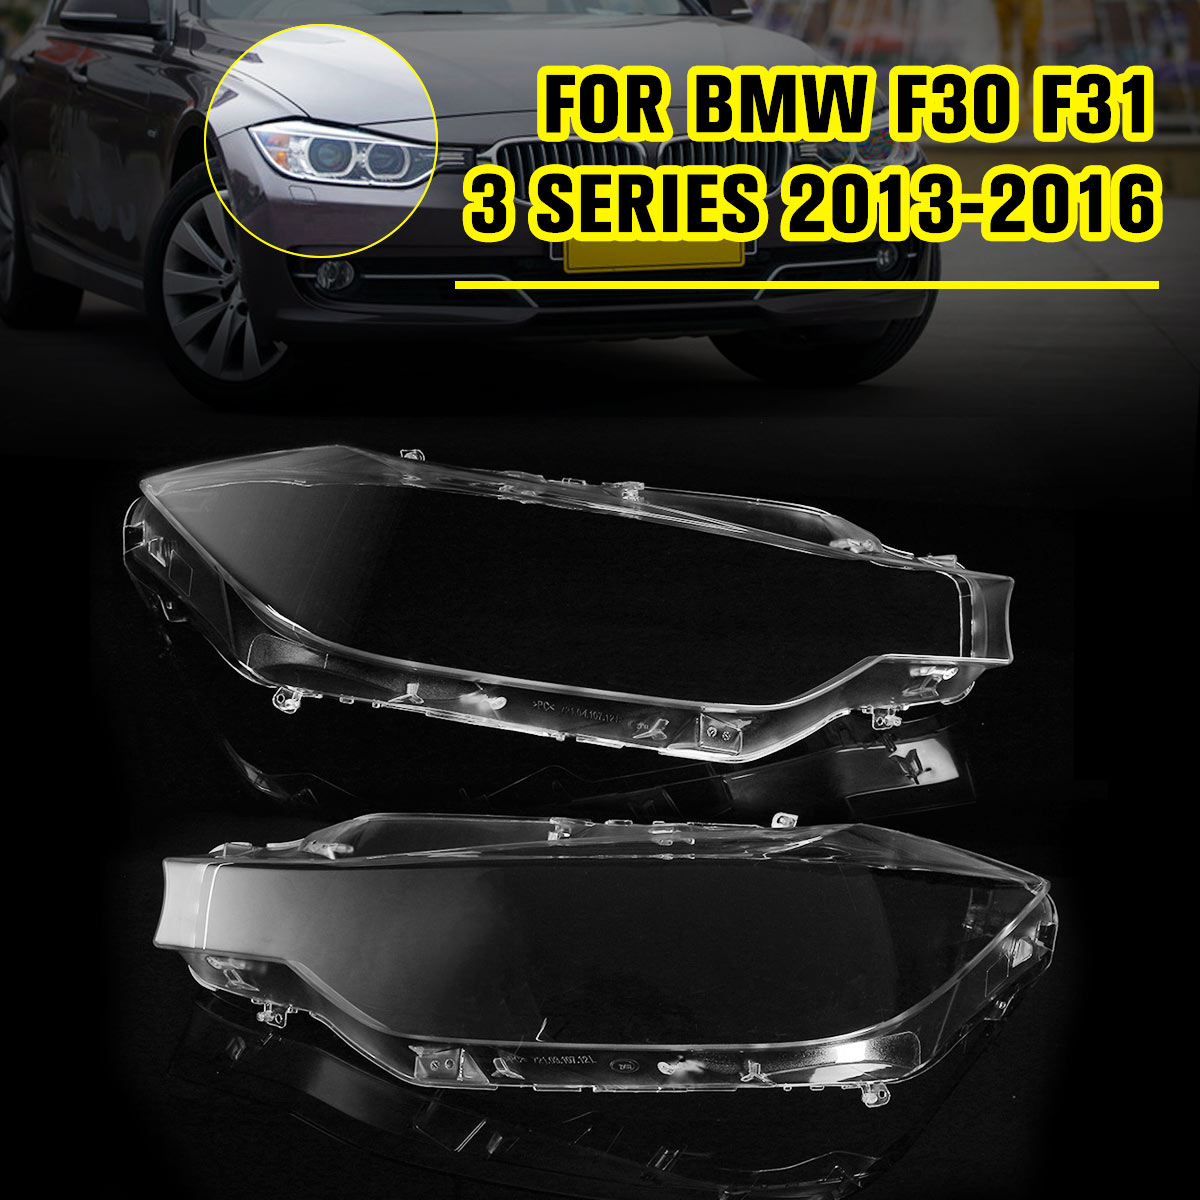 Front Right Headlight Headlamp Lens Lenses Cover For BMW F30 F31 For Sedan Touring 3 series 2013-2016Front Right Headlight Headlamp Lens Lenses Cover For BMW F30 F31 For Sedan Touring 3 series 2013-2016